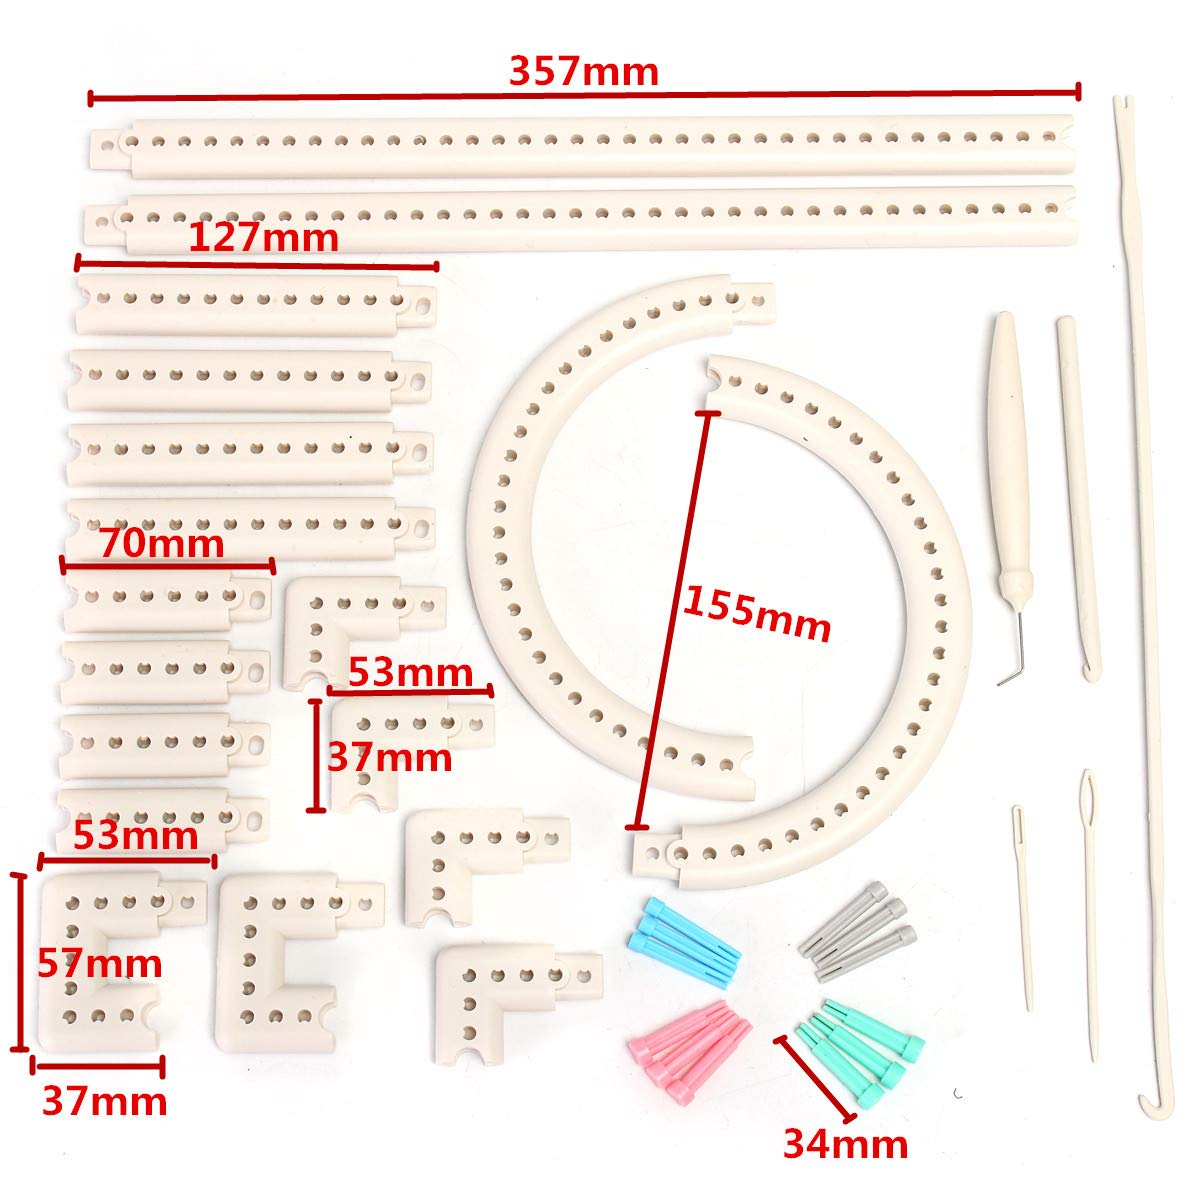 Wayion Multi-Function Craft Yarn Martha Stewart Crafts Knit and Weave Loom Kit DIY Tool by Wayion (Image #9)